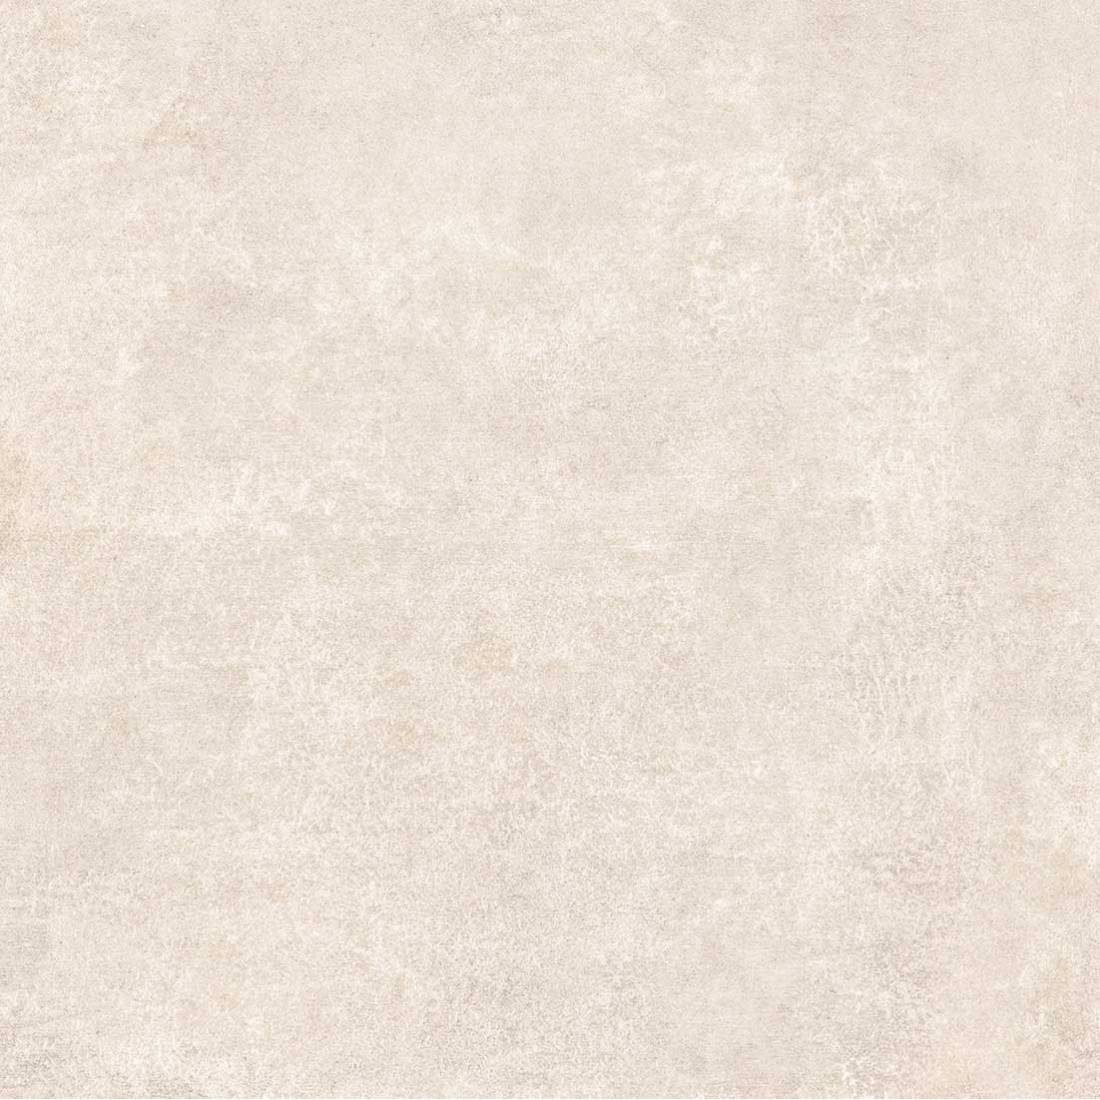 Afyon 60x60 Beige Polished 1